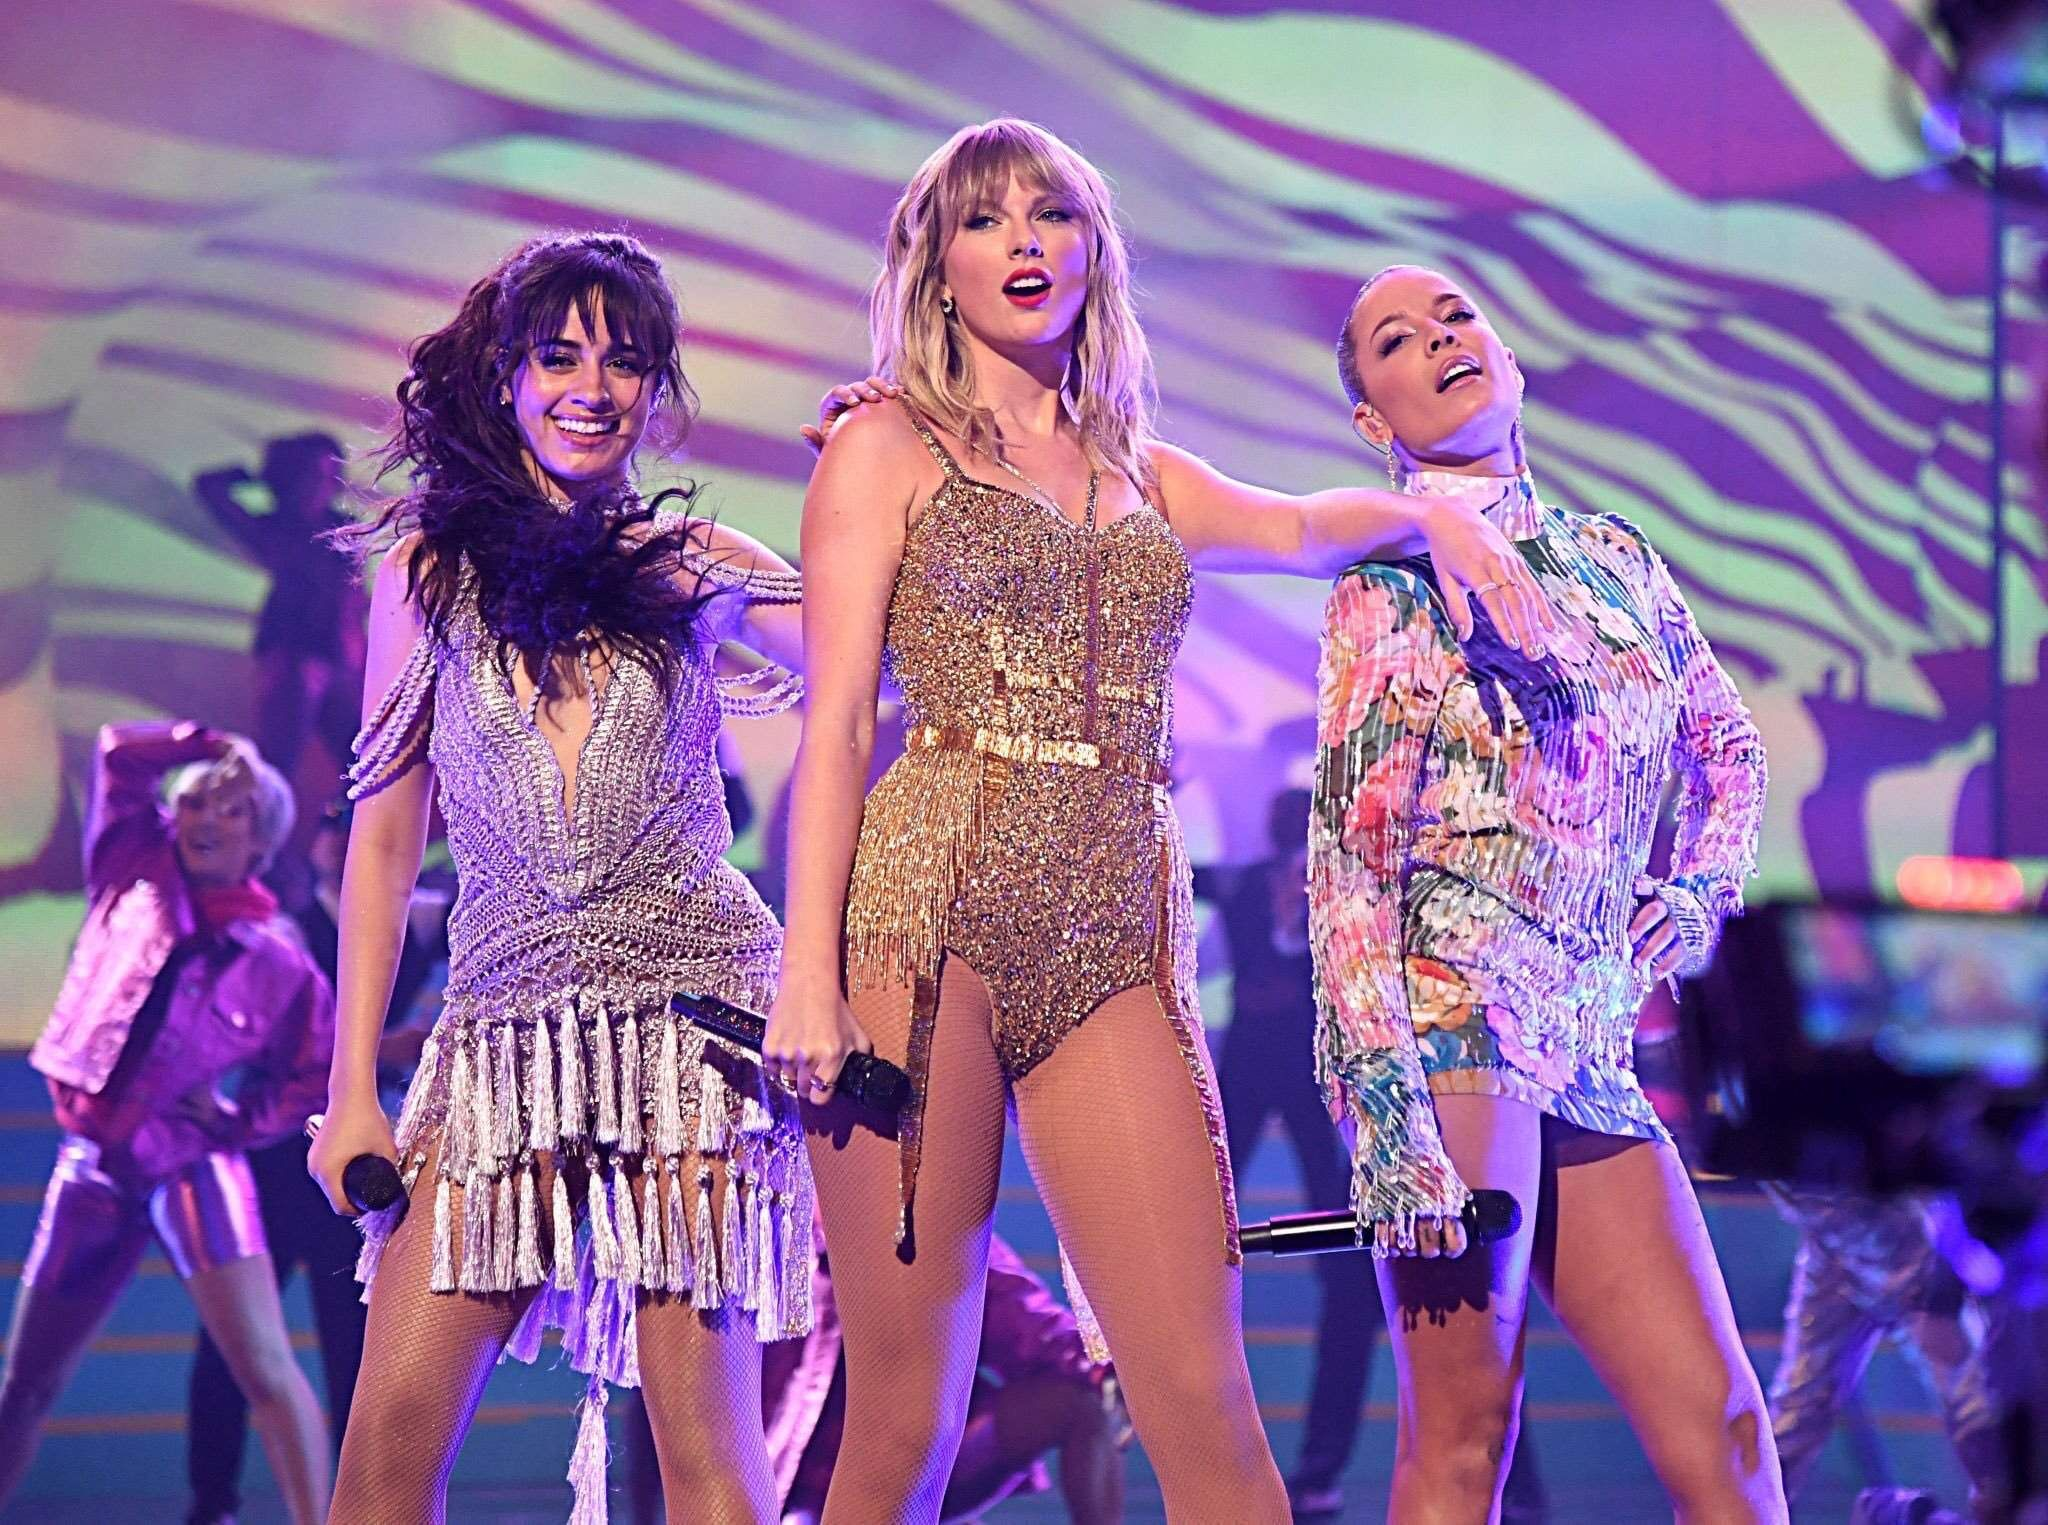 2020 Edition Of American Music Awards To Be Held On November 22 Latest Entertainment News Taylor Swift Halsey Taylor Swift Web